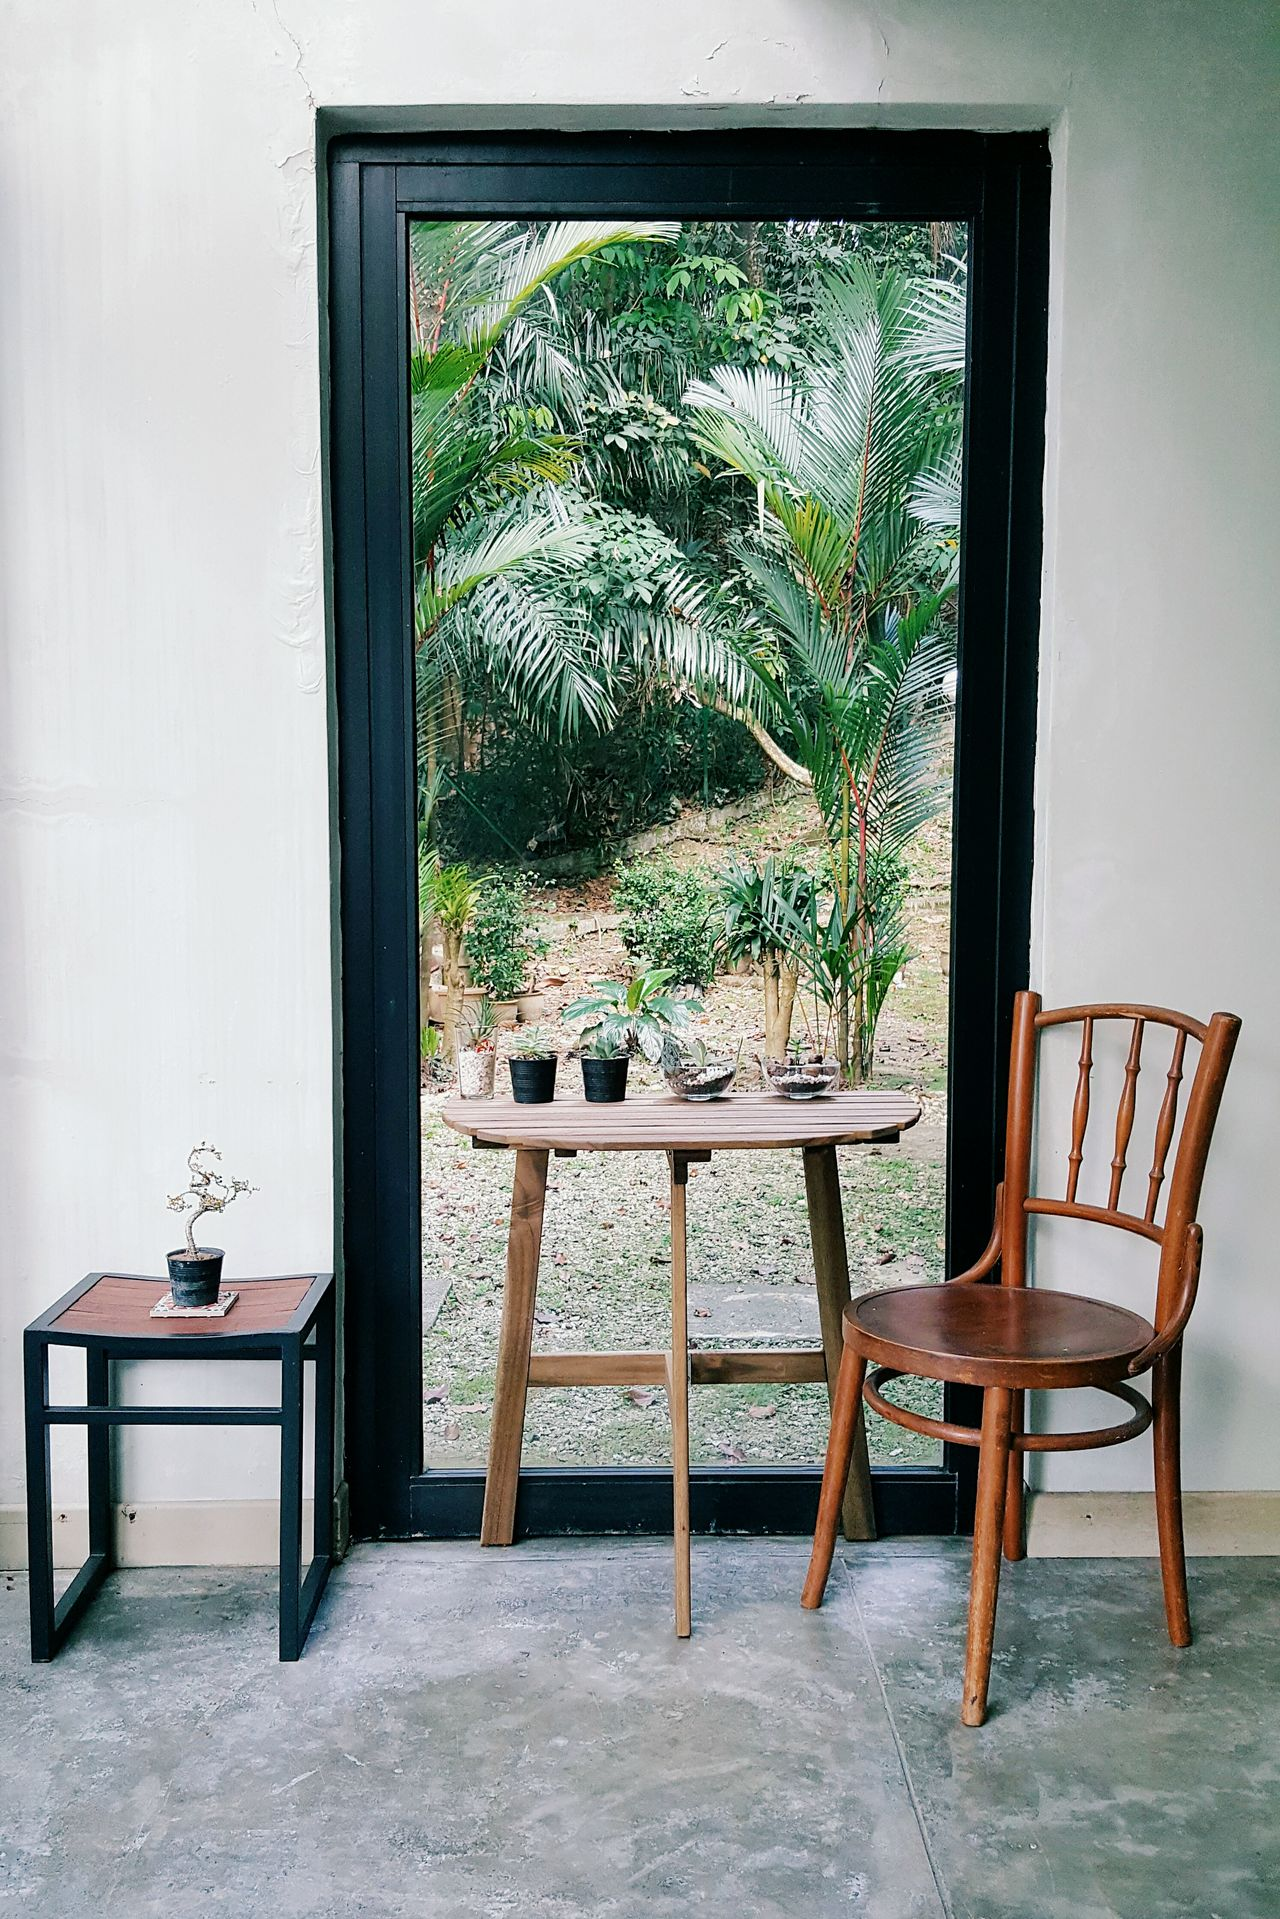 Chair and table by glass door at home